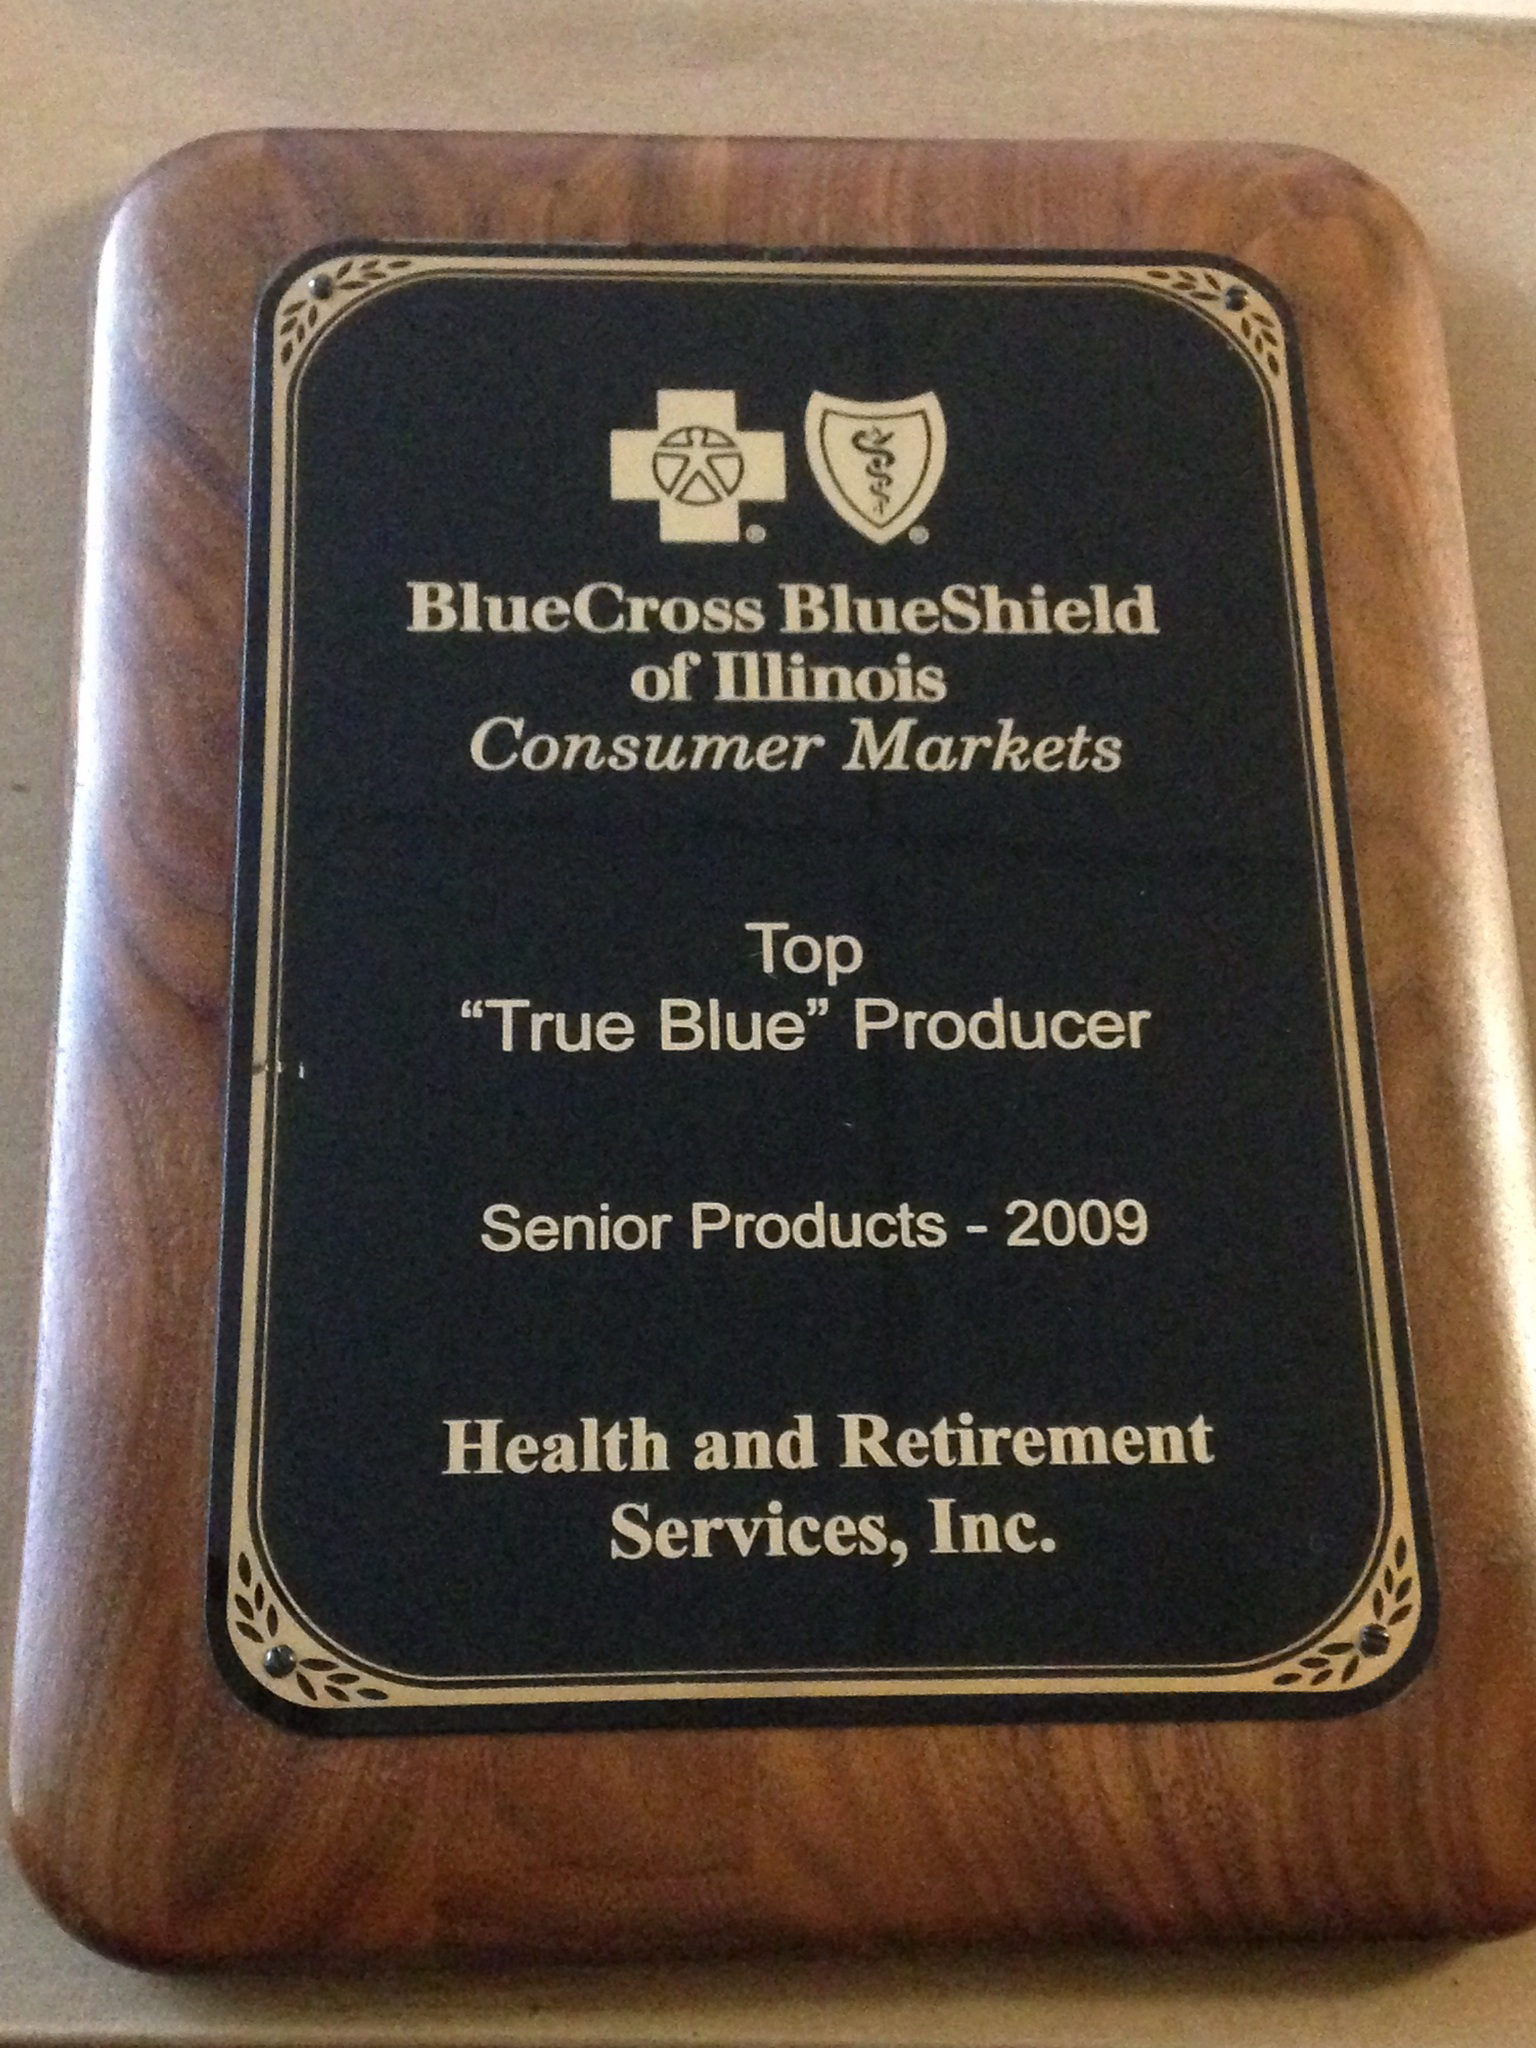 BlueCross BlueShield of Illinois 2009 top producer